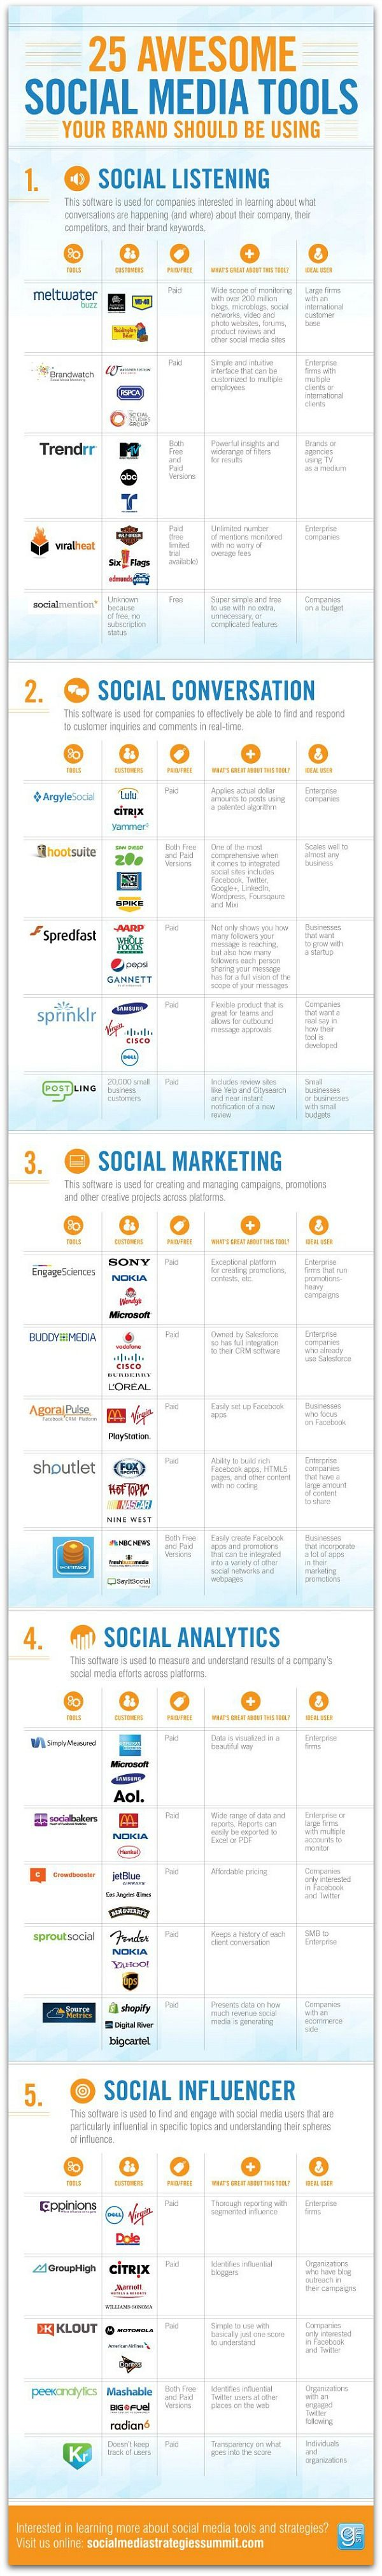 Infographic: The ultimate guide to social media tools 2013 #infographic